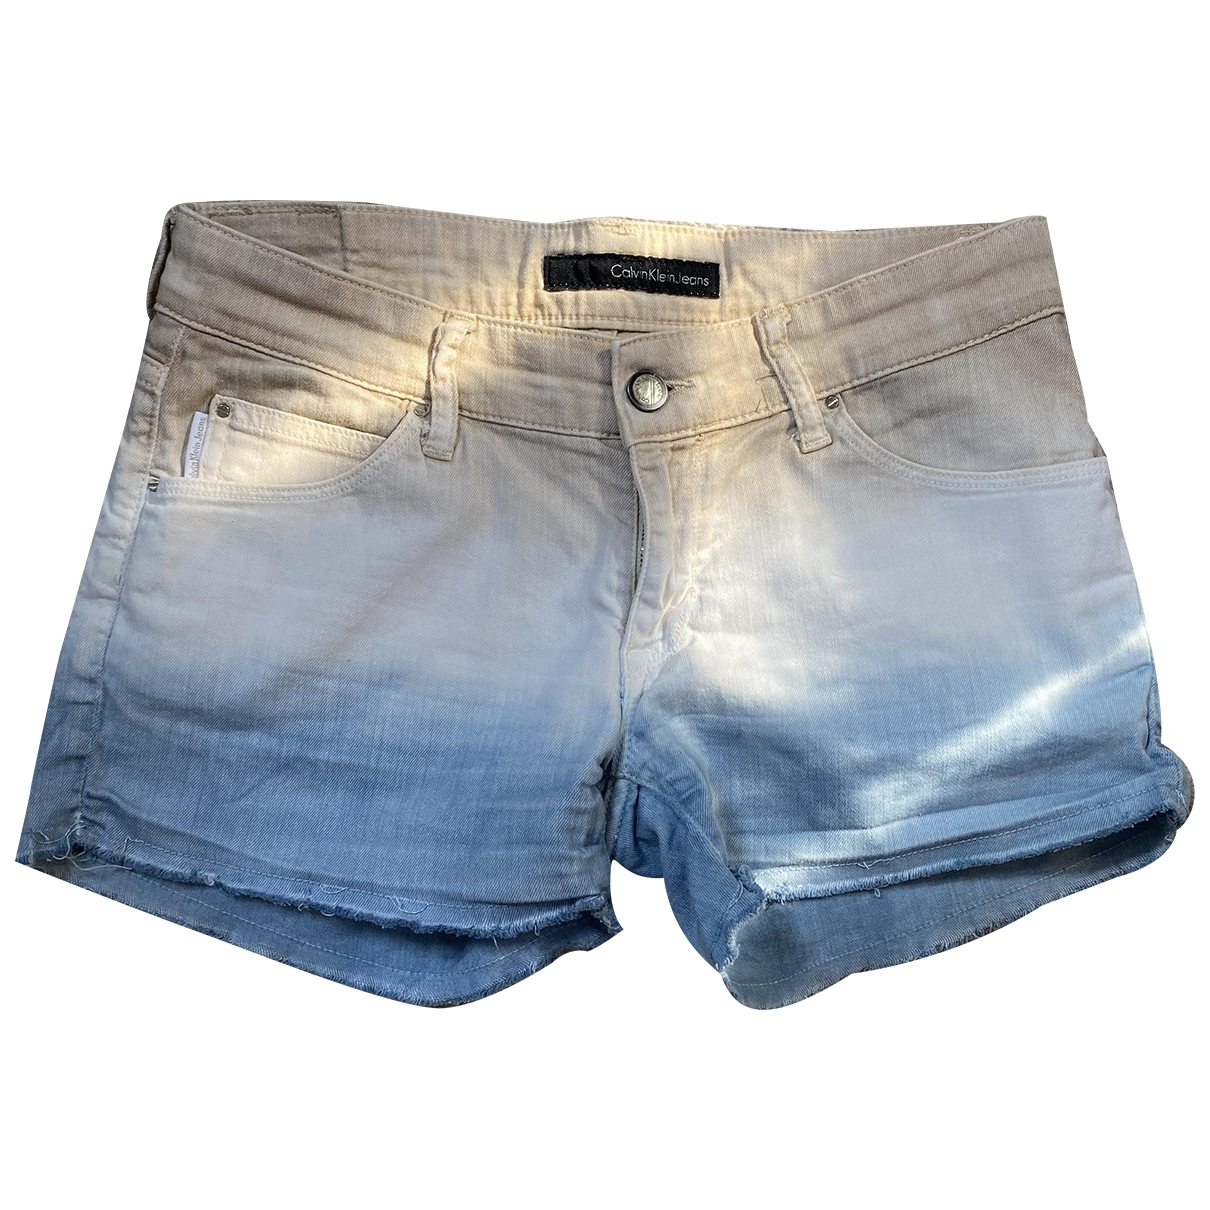 Calvin Klein \N Multicolour Denim - Jeans Shorts for Women 8 UK